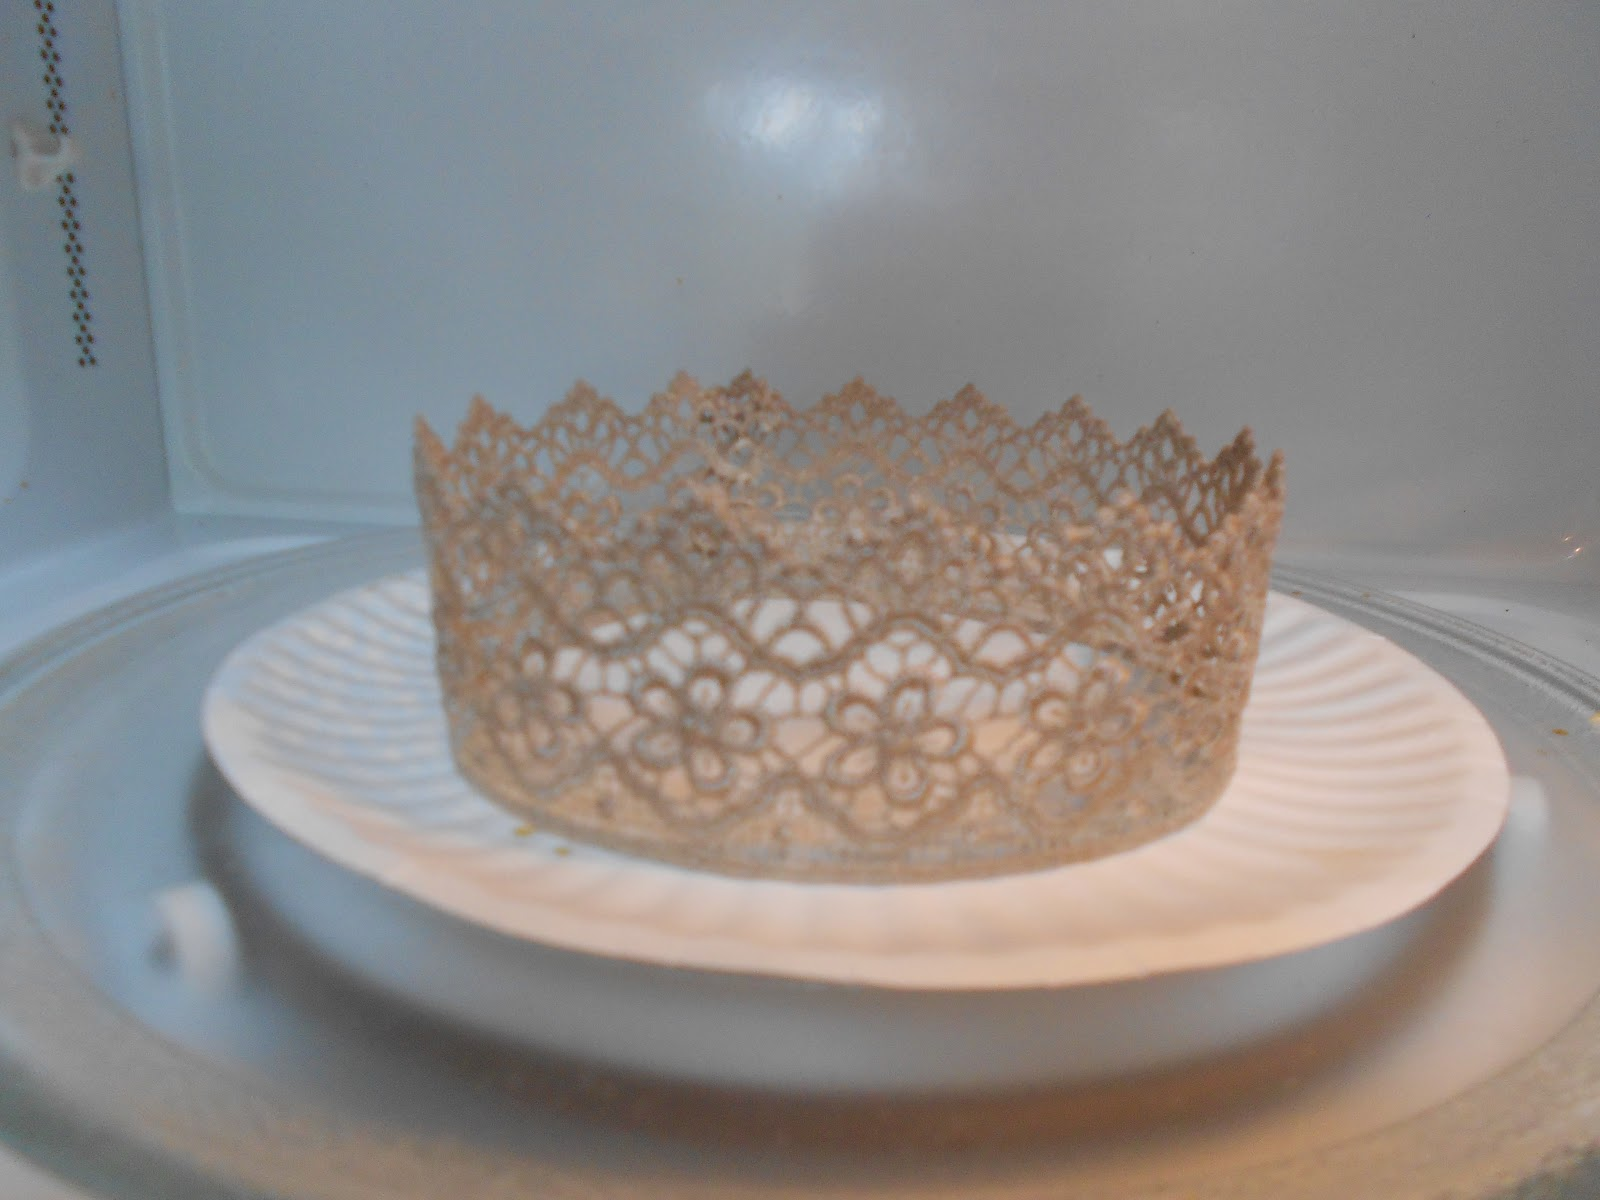 Jennuine By Rook No 17 Lace Crowns Quick Microwave